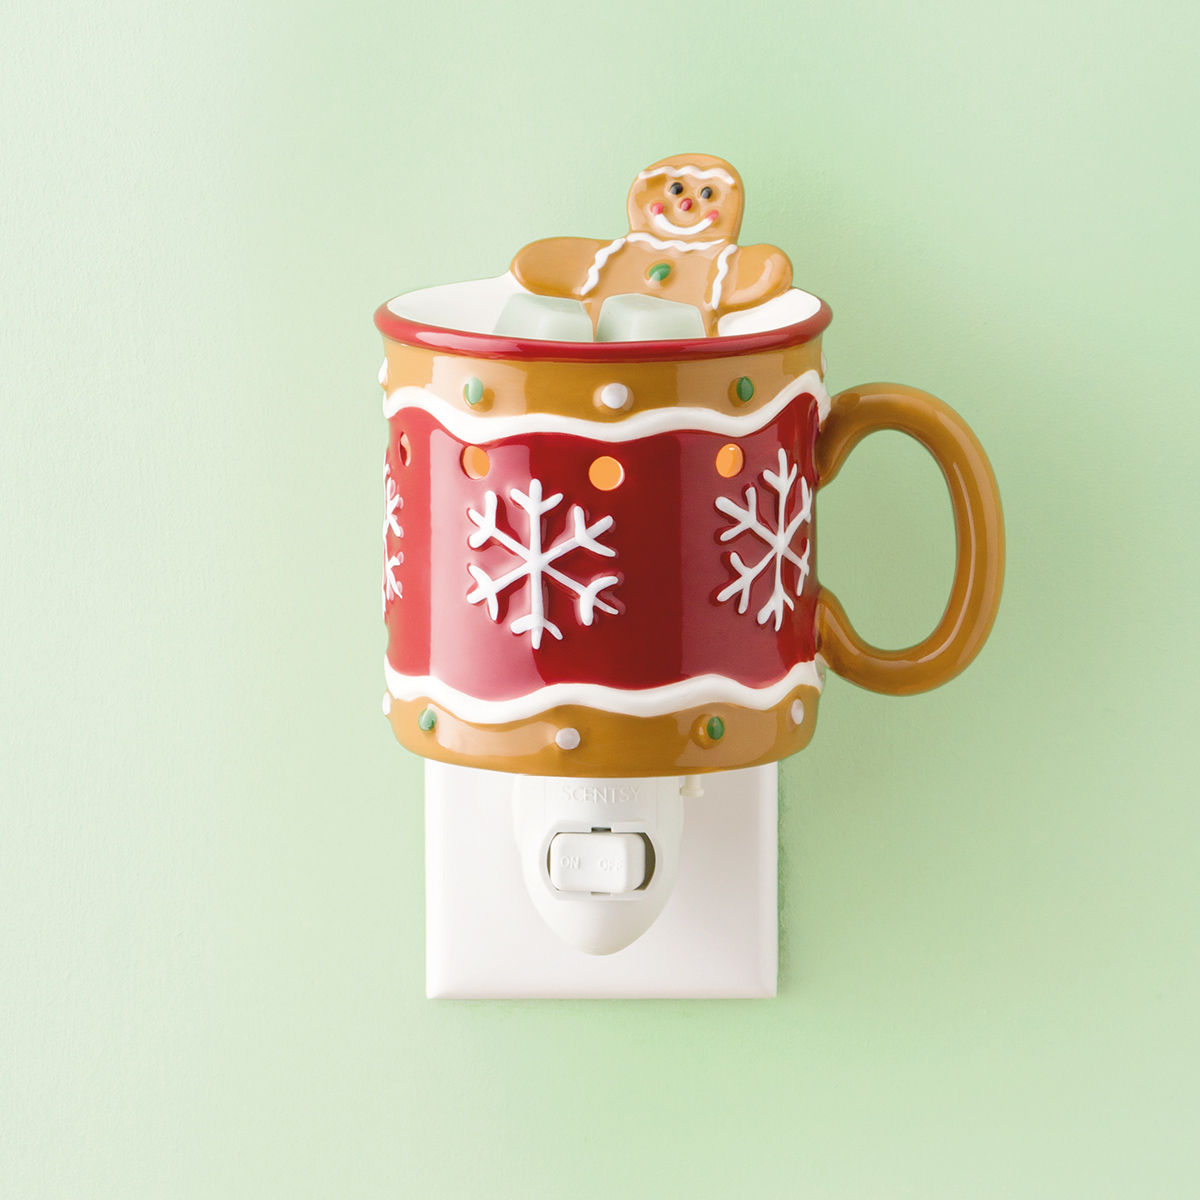 Scentsy Mini Warmer Gingerbread Man Shop Scentsy